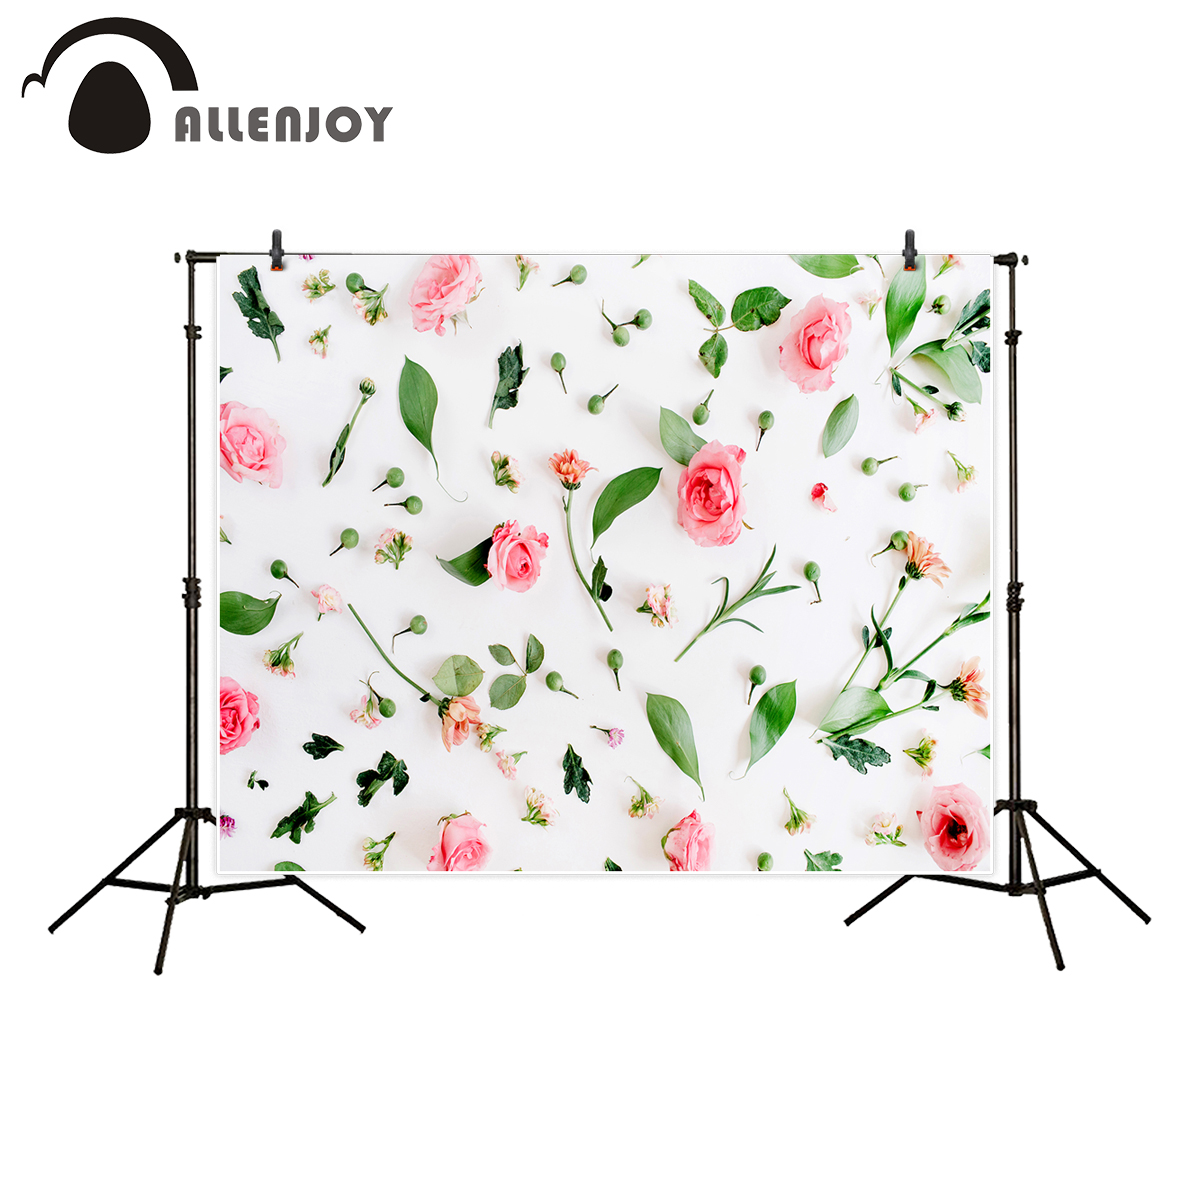 Allenjoy photography backdrop spring wedding pink rose flower leaves background photo studio printed photocall prop newborn allenjoy photography backdrop flower door wedding children painting colorful background photo studio photocall photo shoot